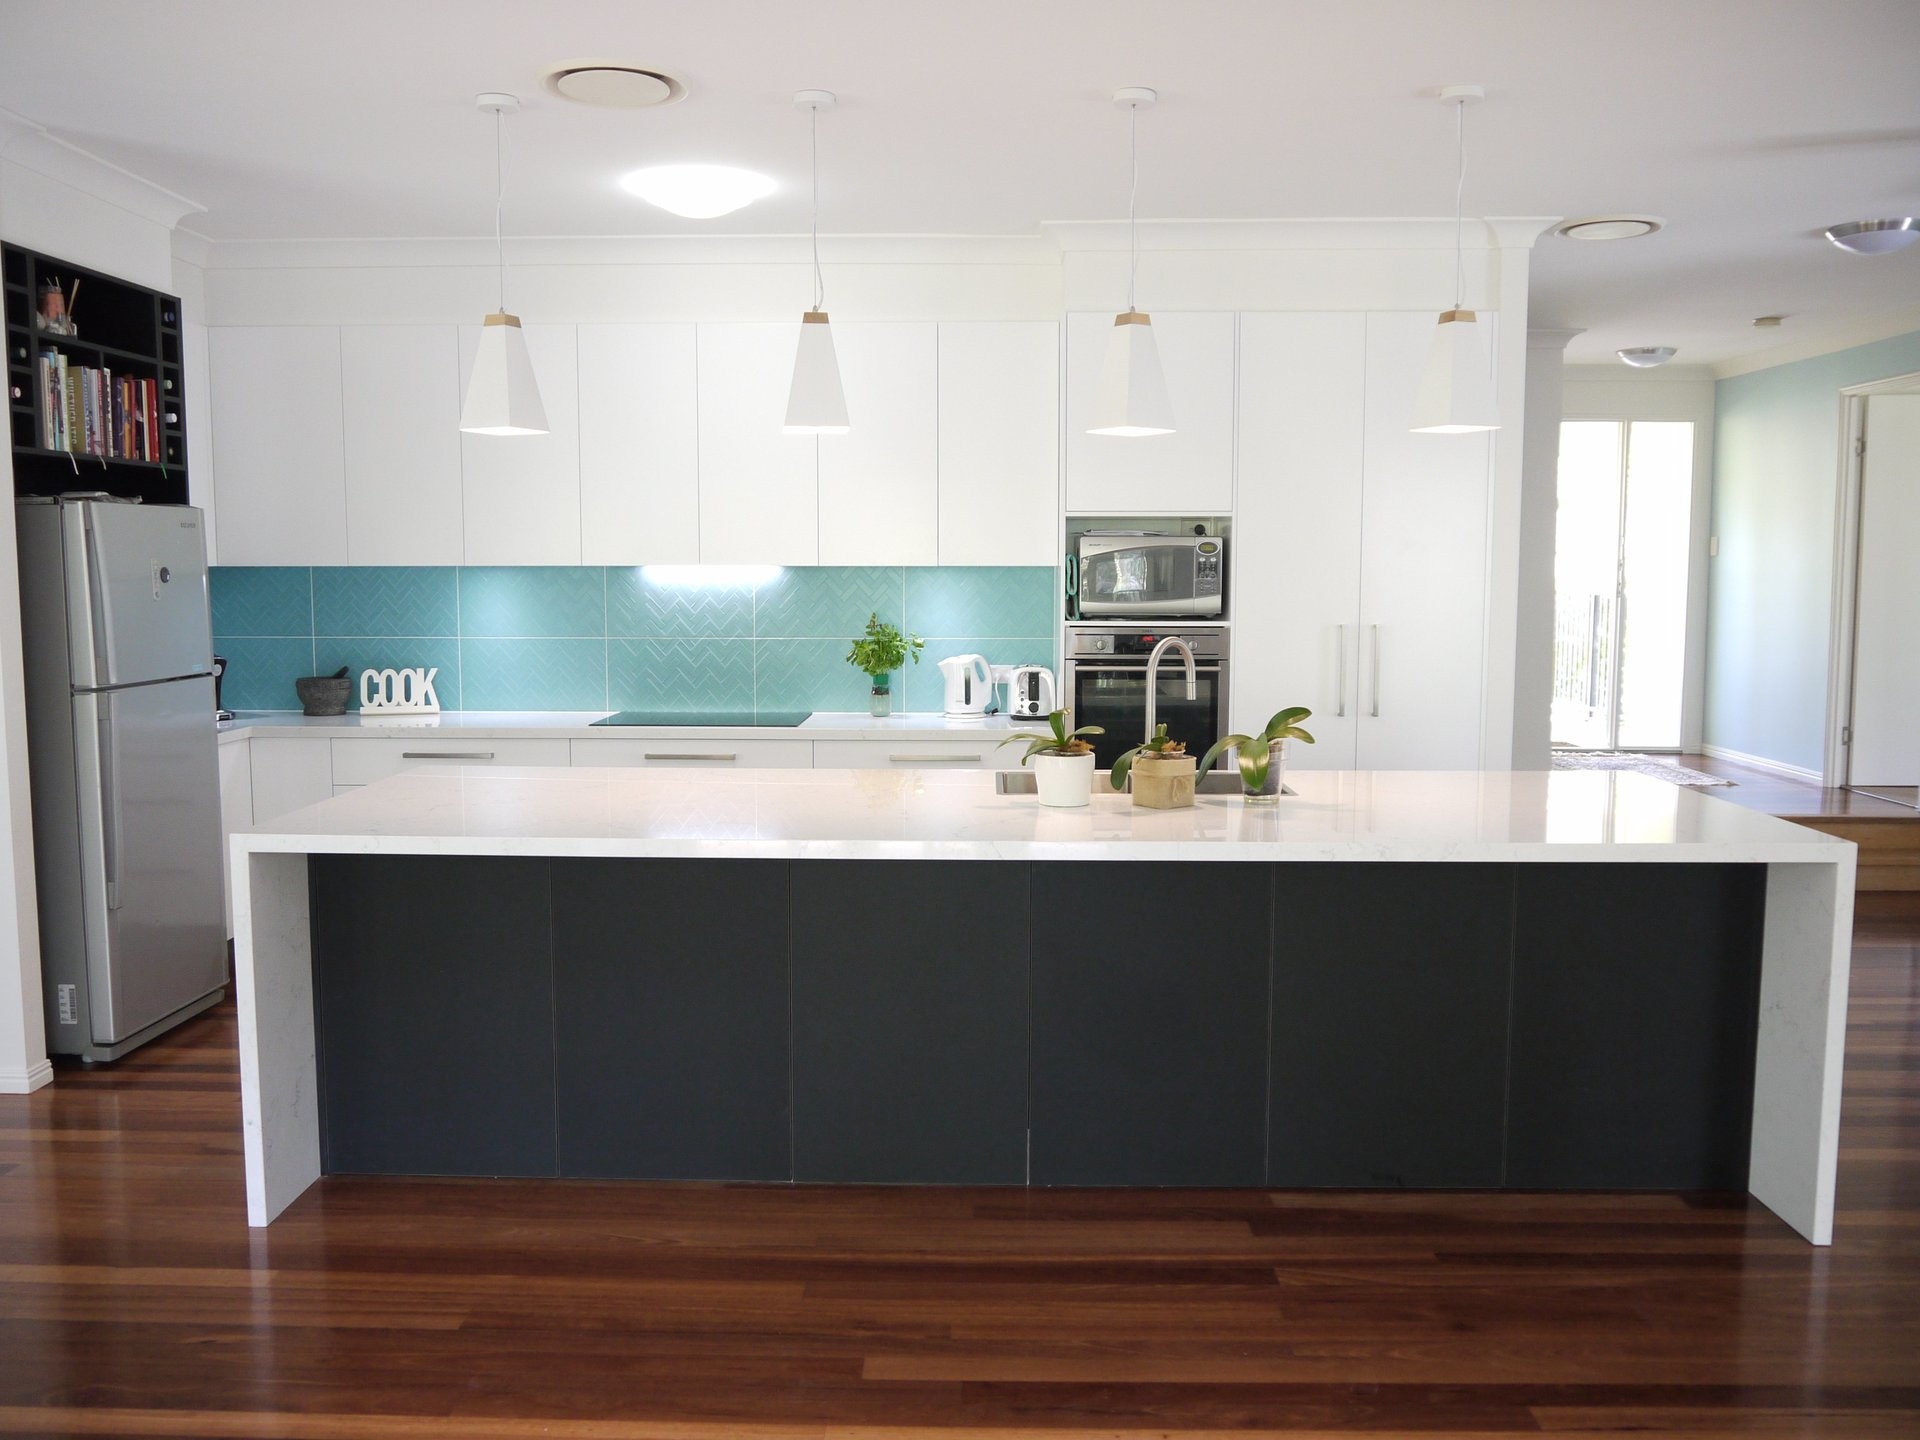 kitchen designs sunshine coast qld kitchens coast cabinetry solutions 463